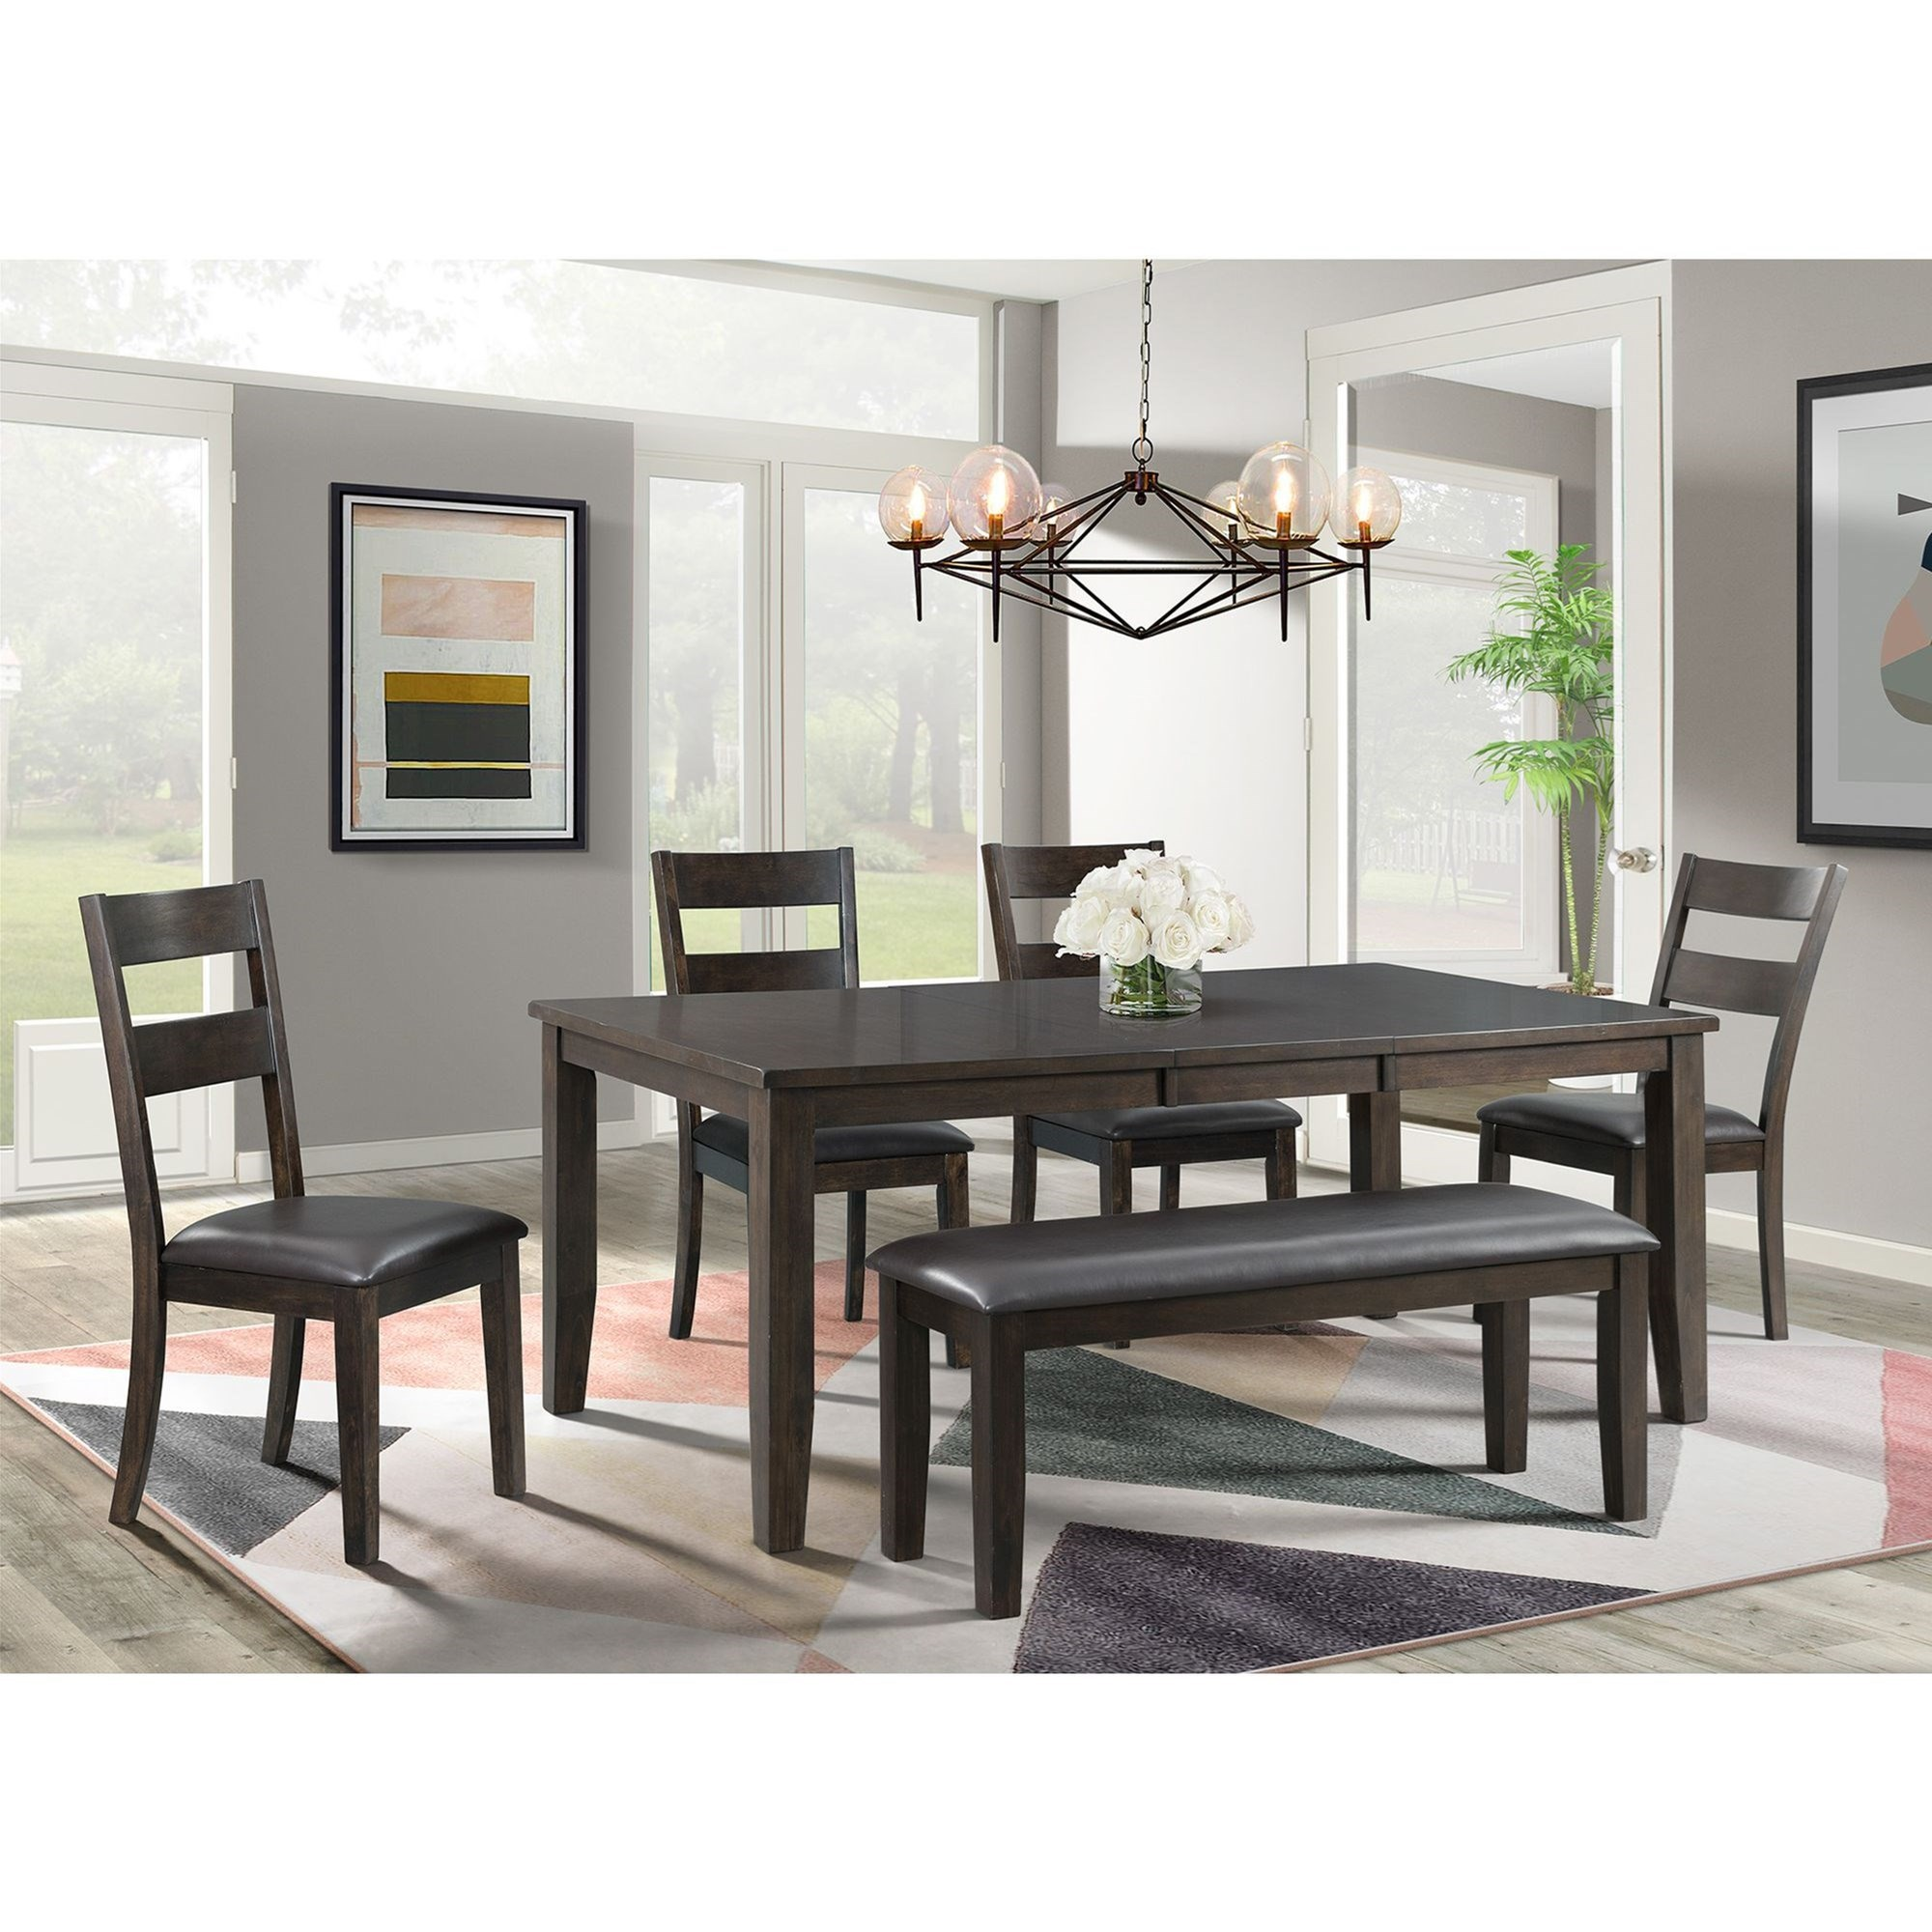 Mango Table and Chair Set with Bench by Elements International at Dream Home Interiors